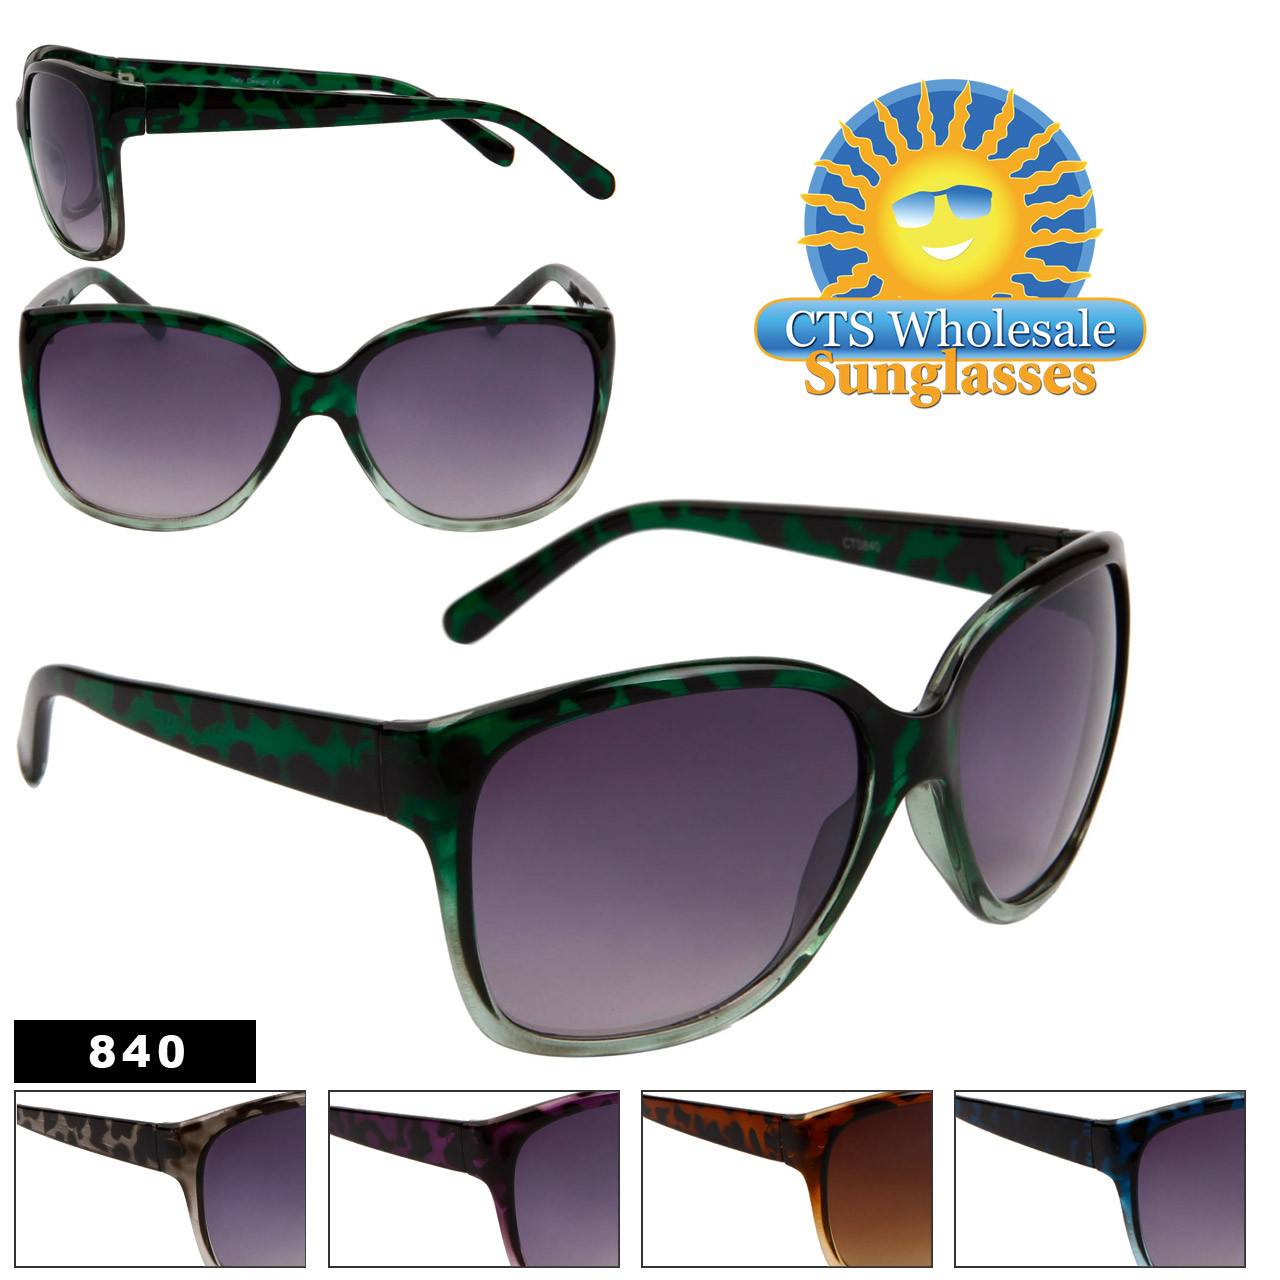 Women's Wholesale Fashion Sunglasses - Style # 840